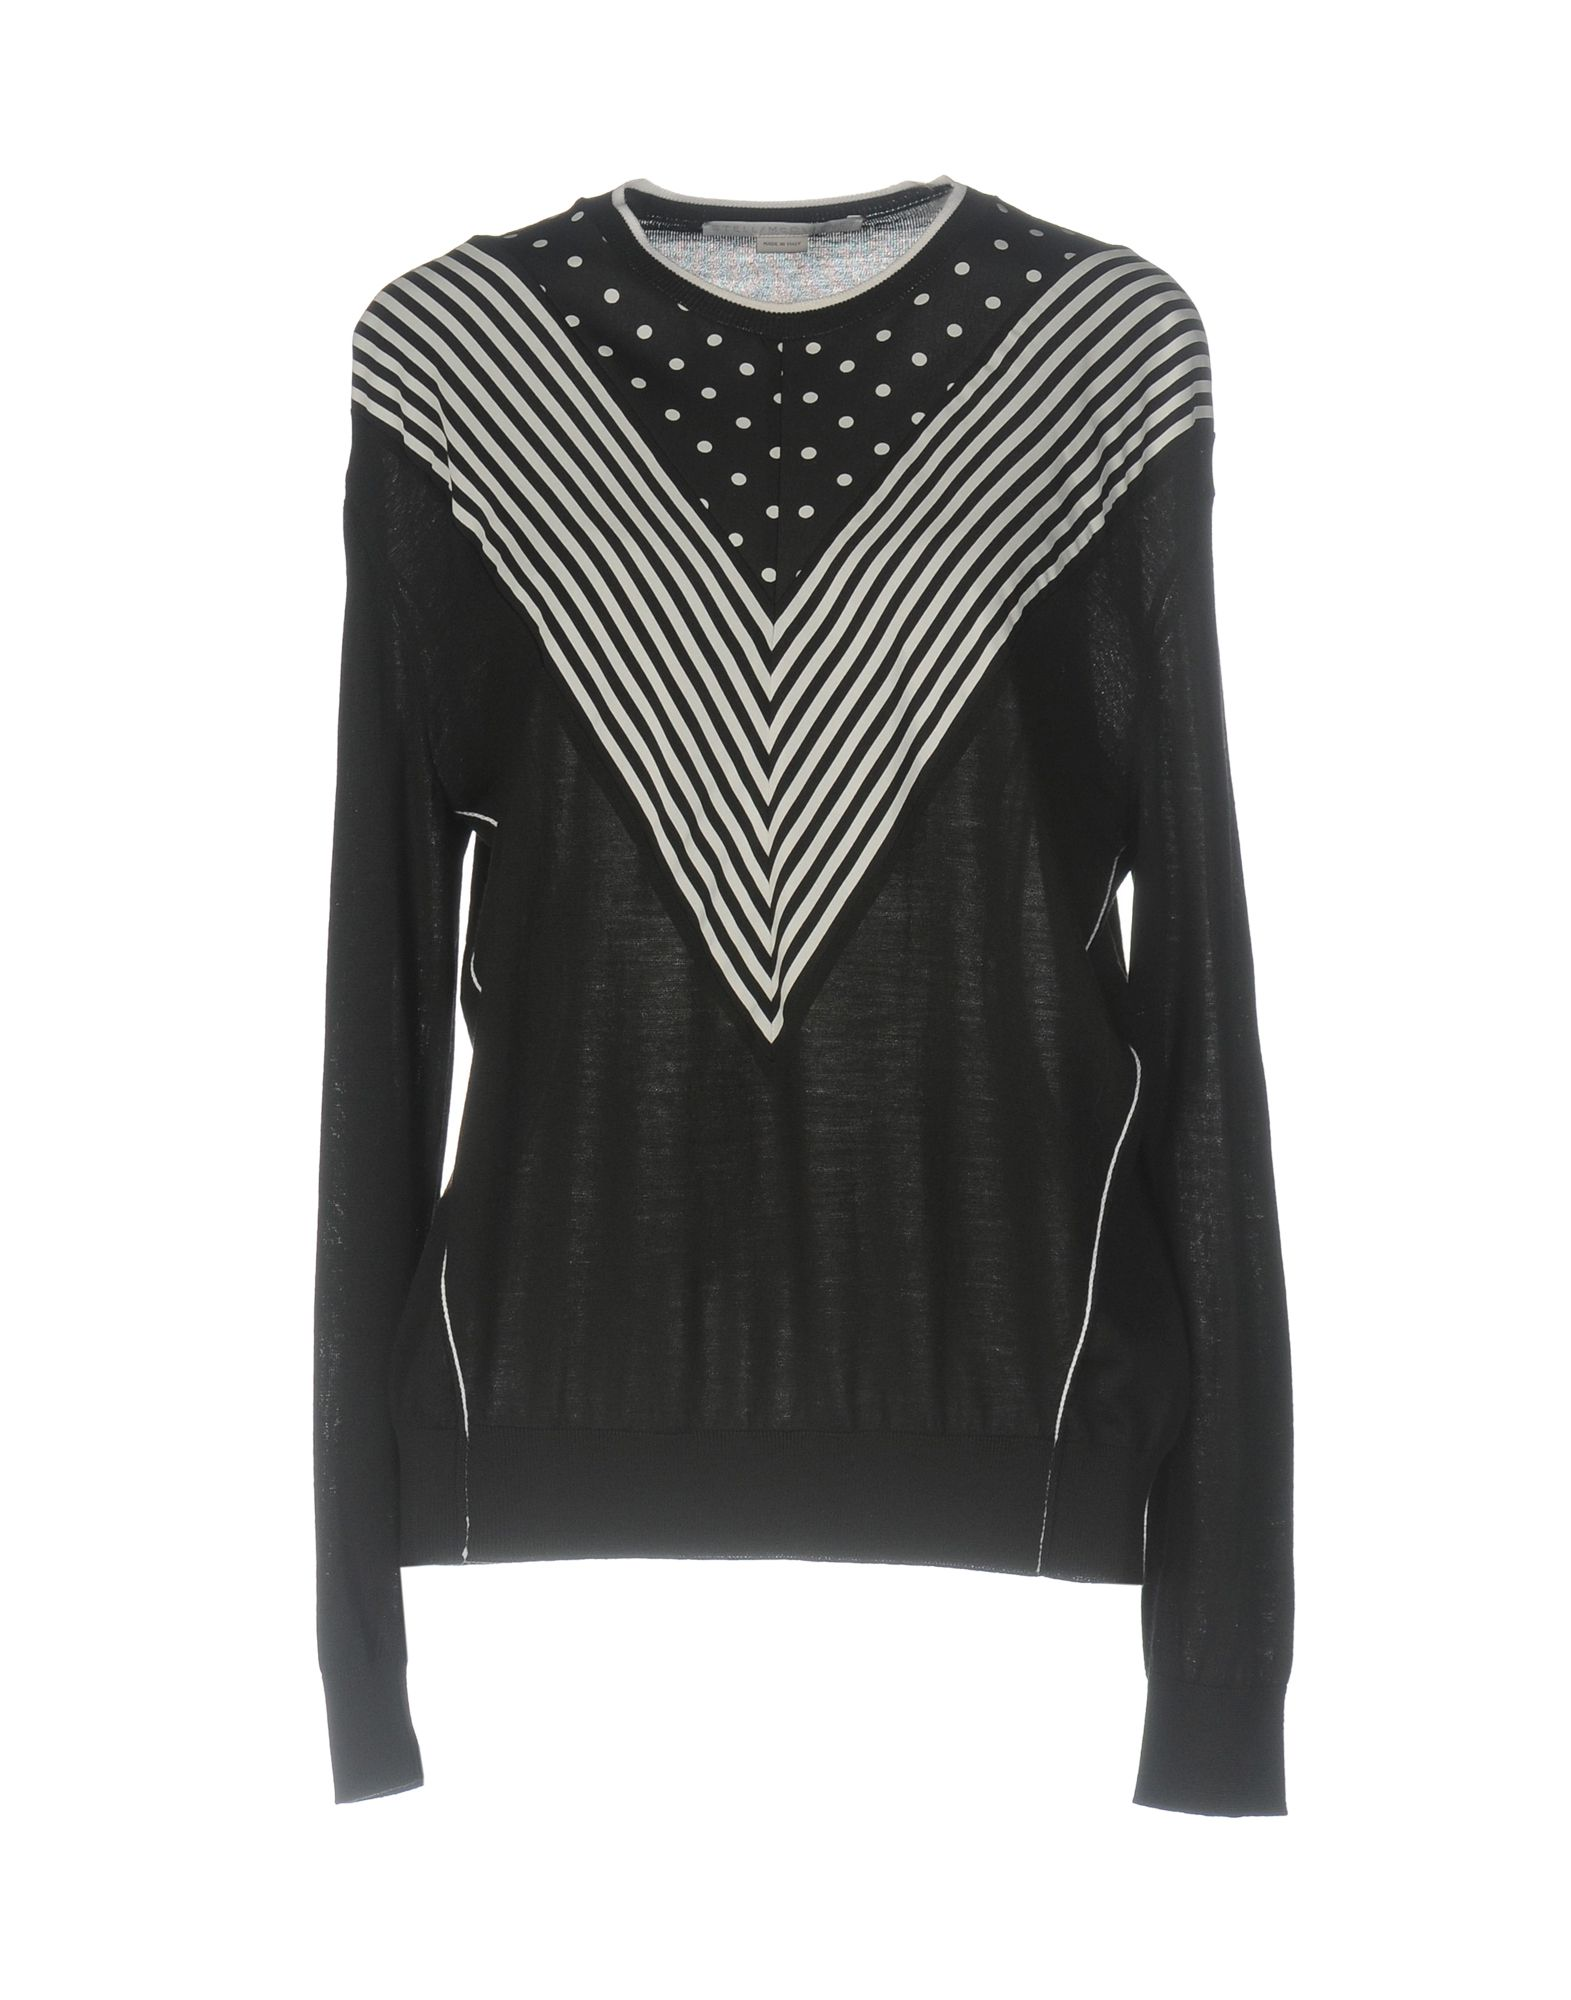 Women's sweaters and sweatshirts online: designer knitwear, hoodies,  pullovers and tops